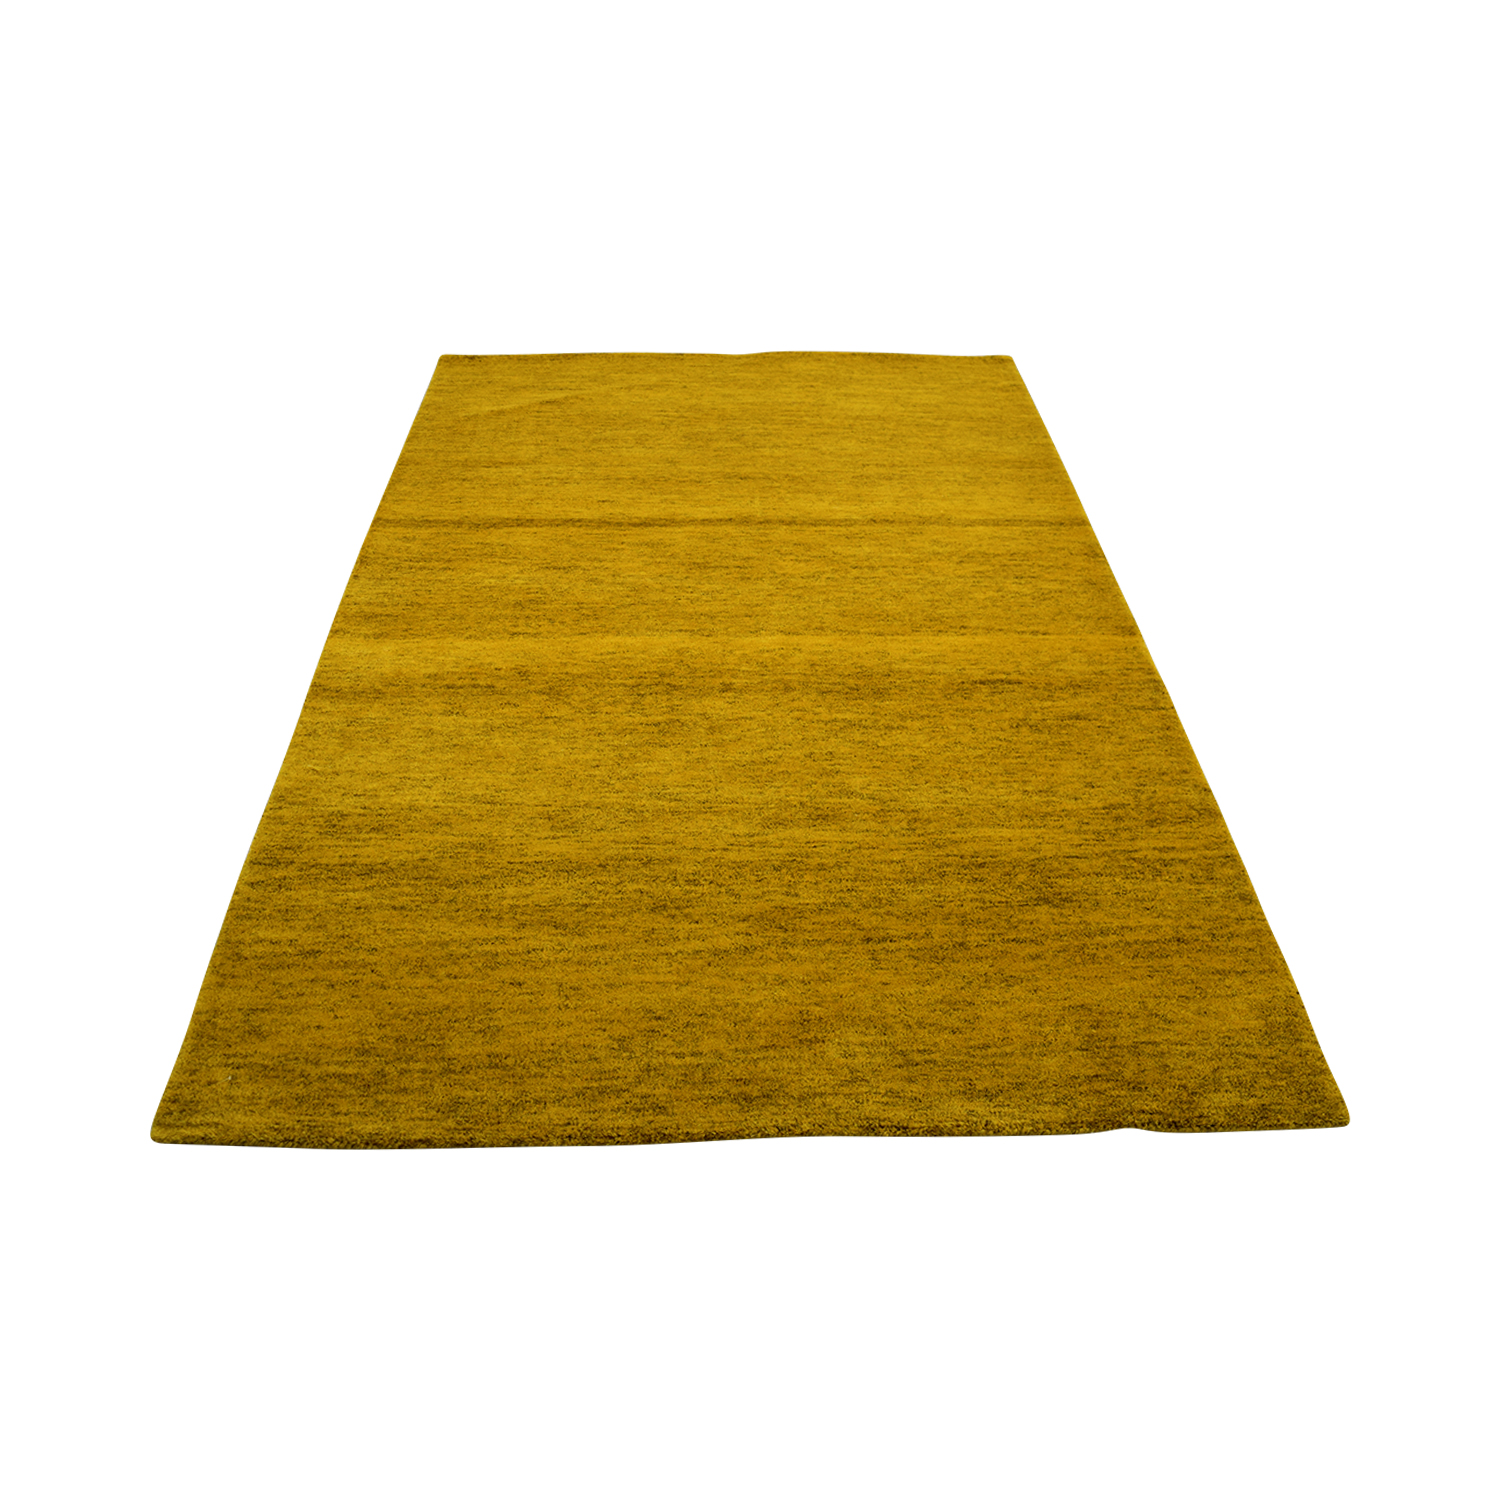 Obeetee Obeetee Yellow Rug second hand